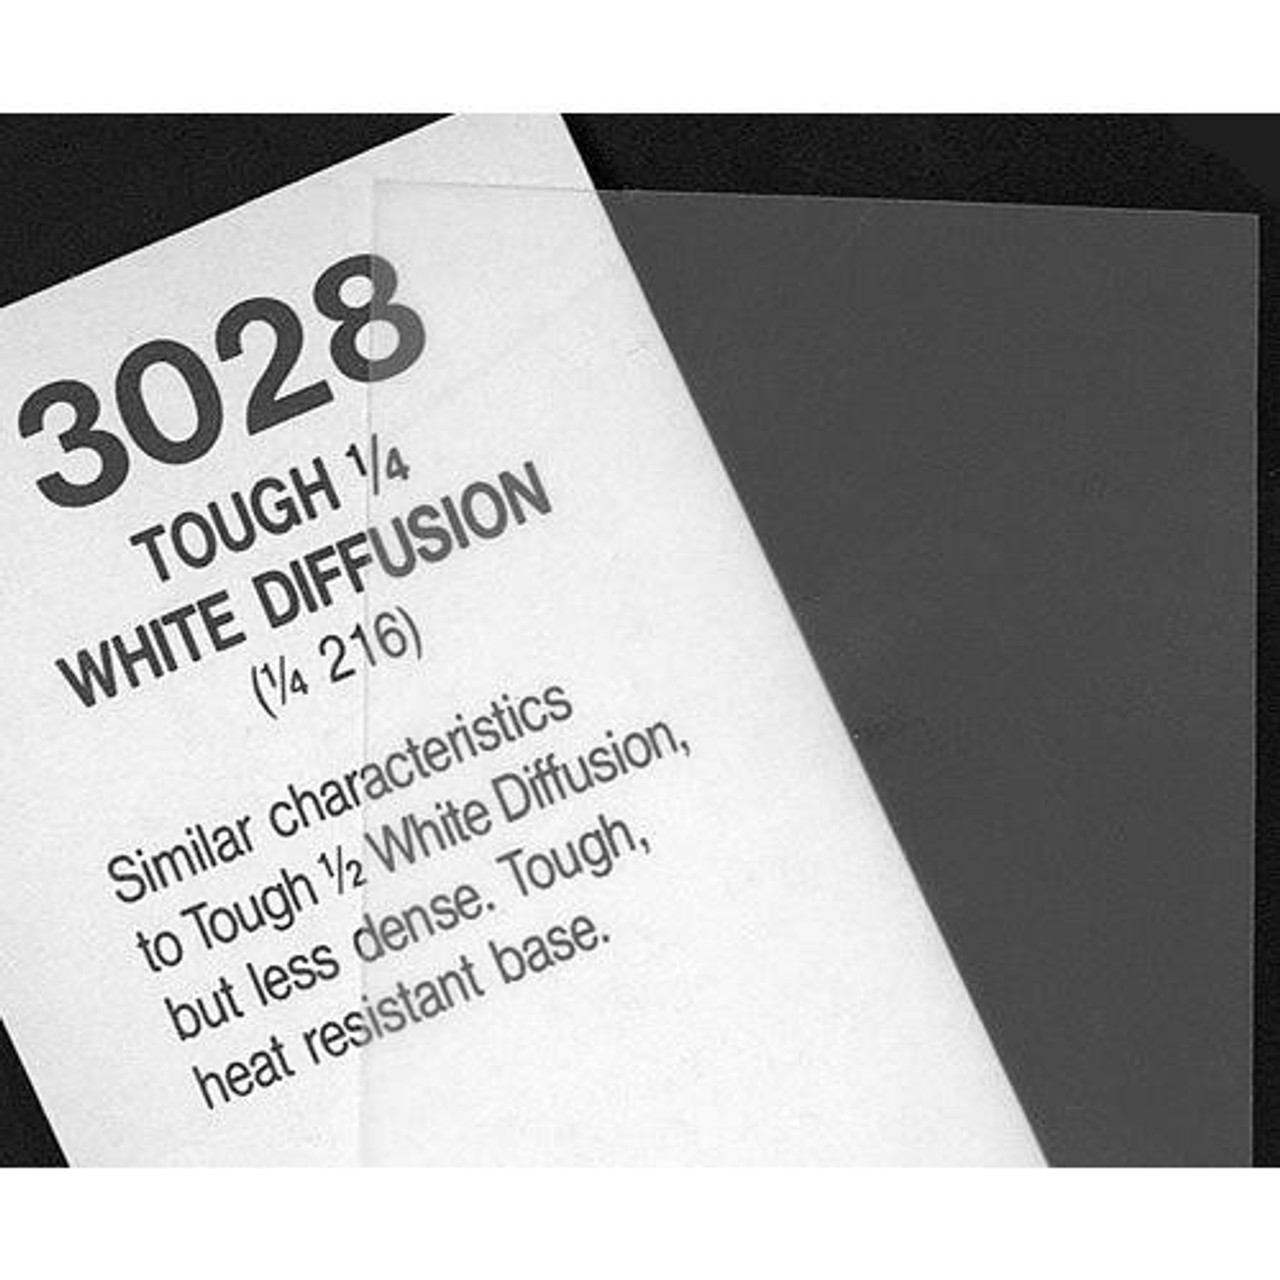 "#3028 Rosco Cinegel 1/4 Tough White Diffusion, 20x24"", Gels"